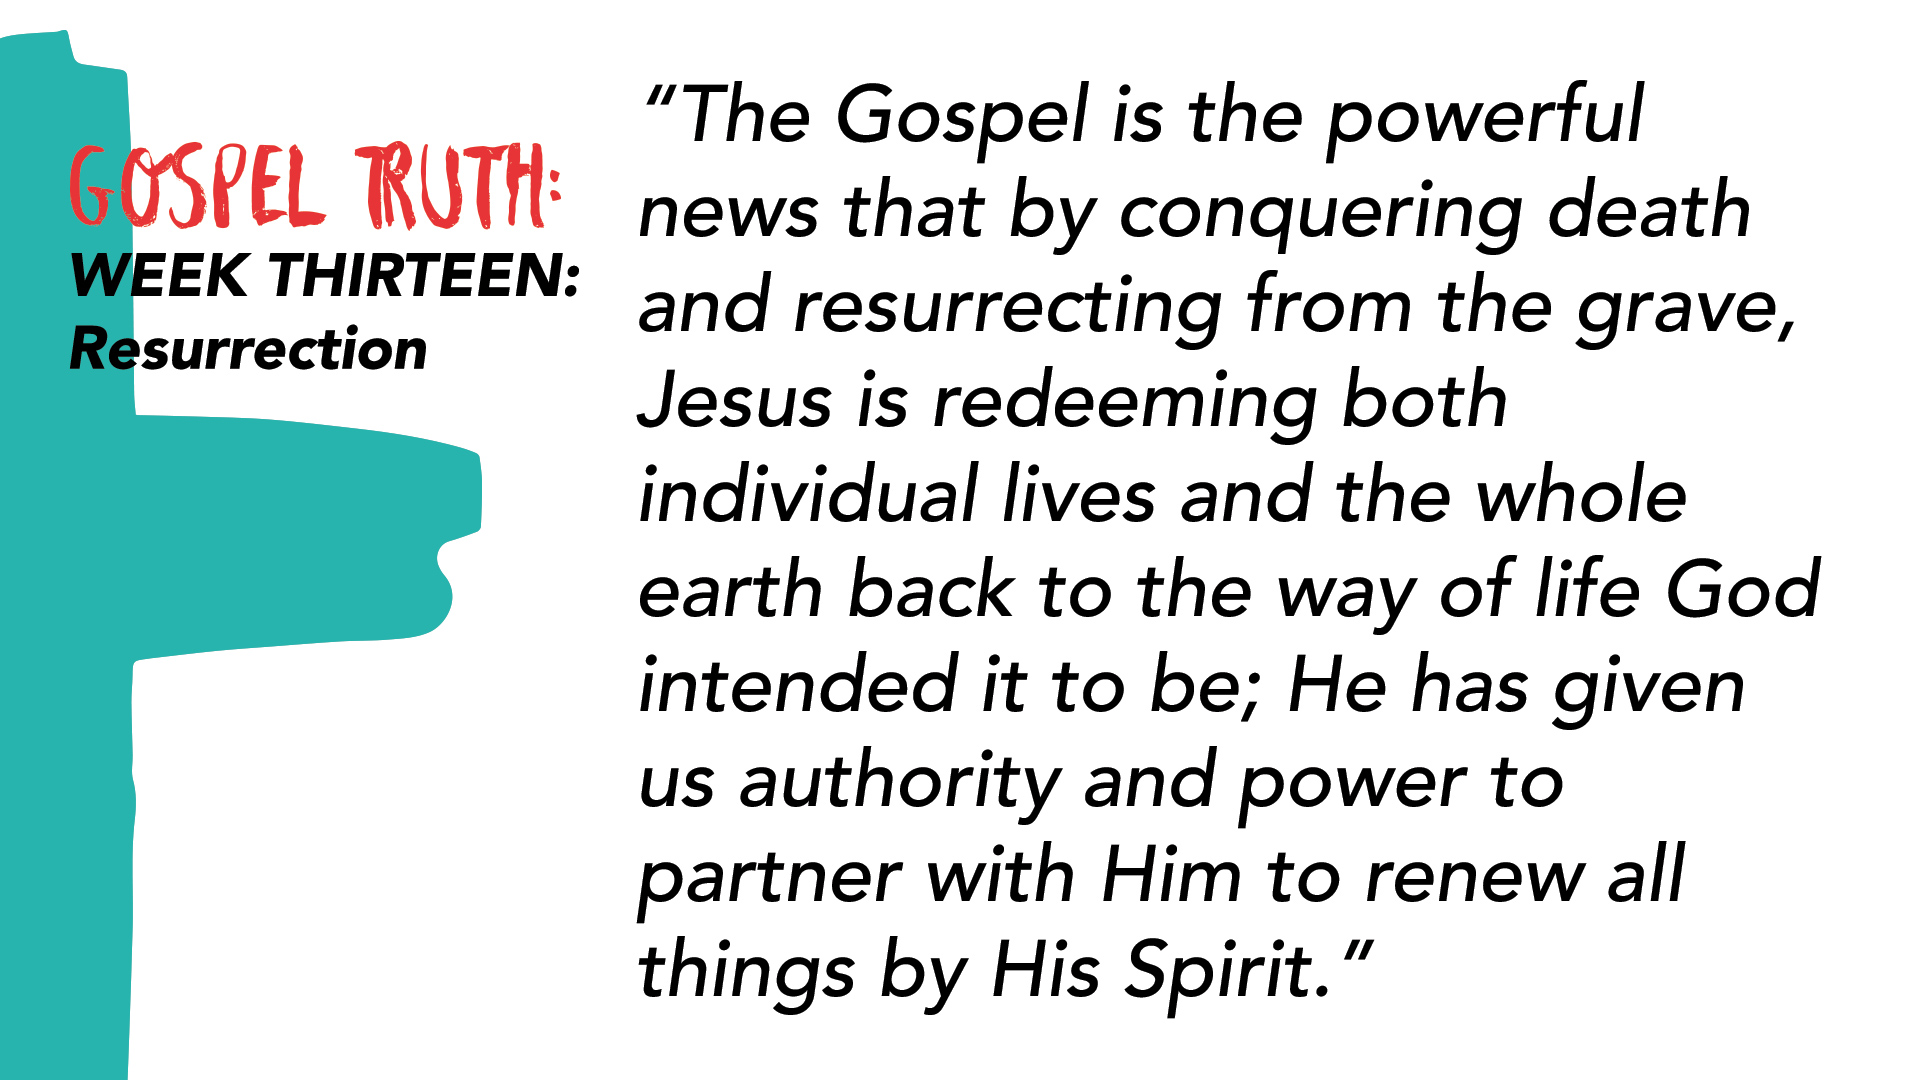 """The Gospel is the powerful news that by conquering death and resurrecting from the grave, Jesus is redeeming both individual lives and the whole earth back to the way of life God intended it to be; He has given us authority and power to partner with Him to renew all things by His Spirit."""